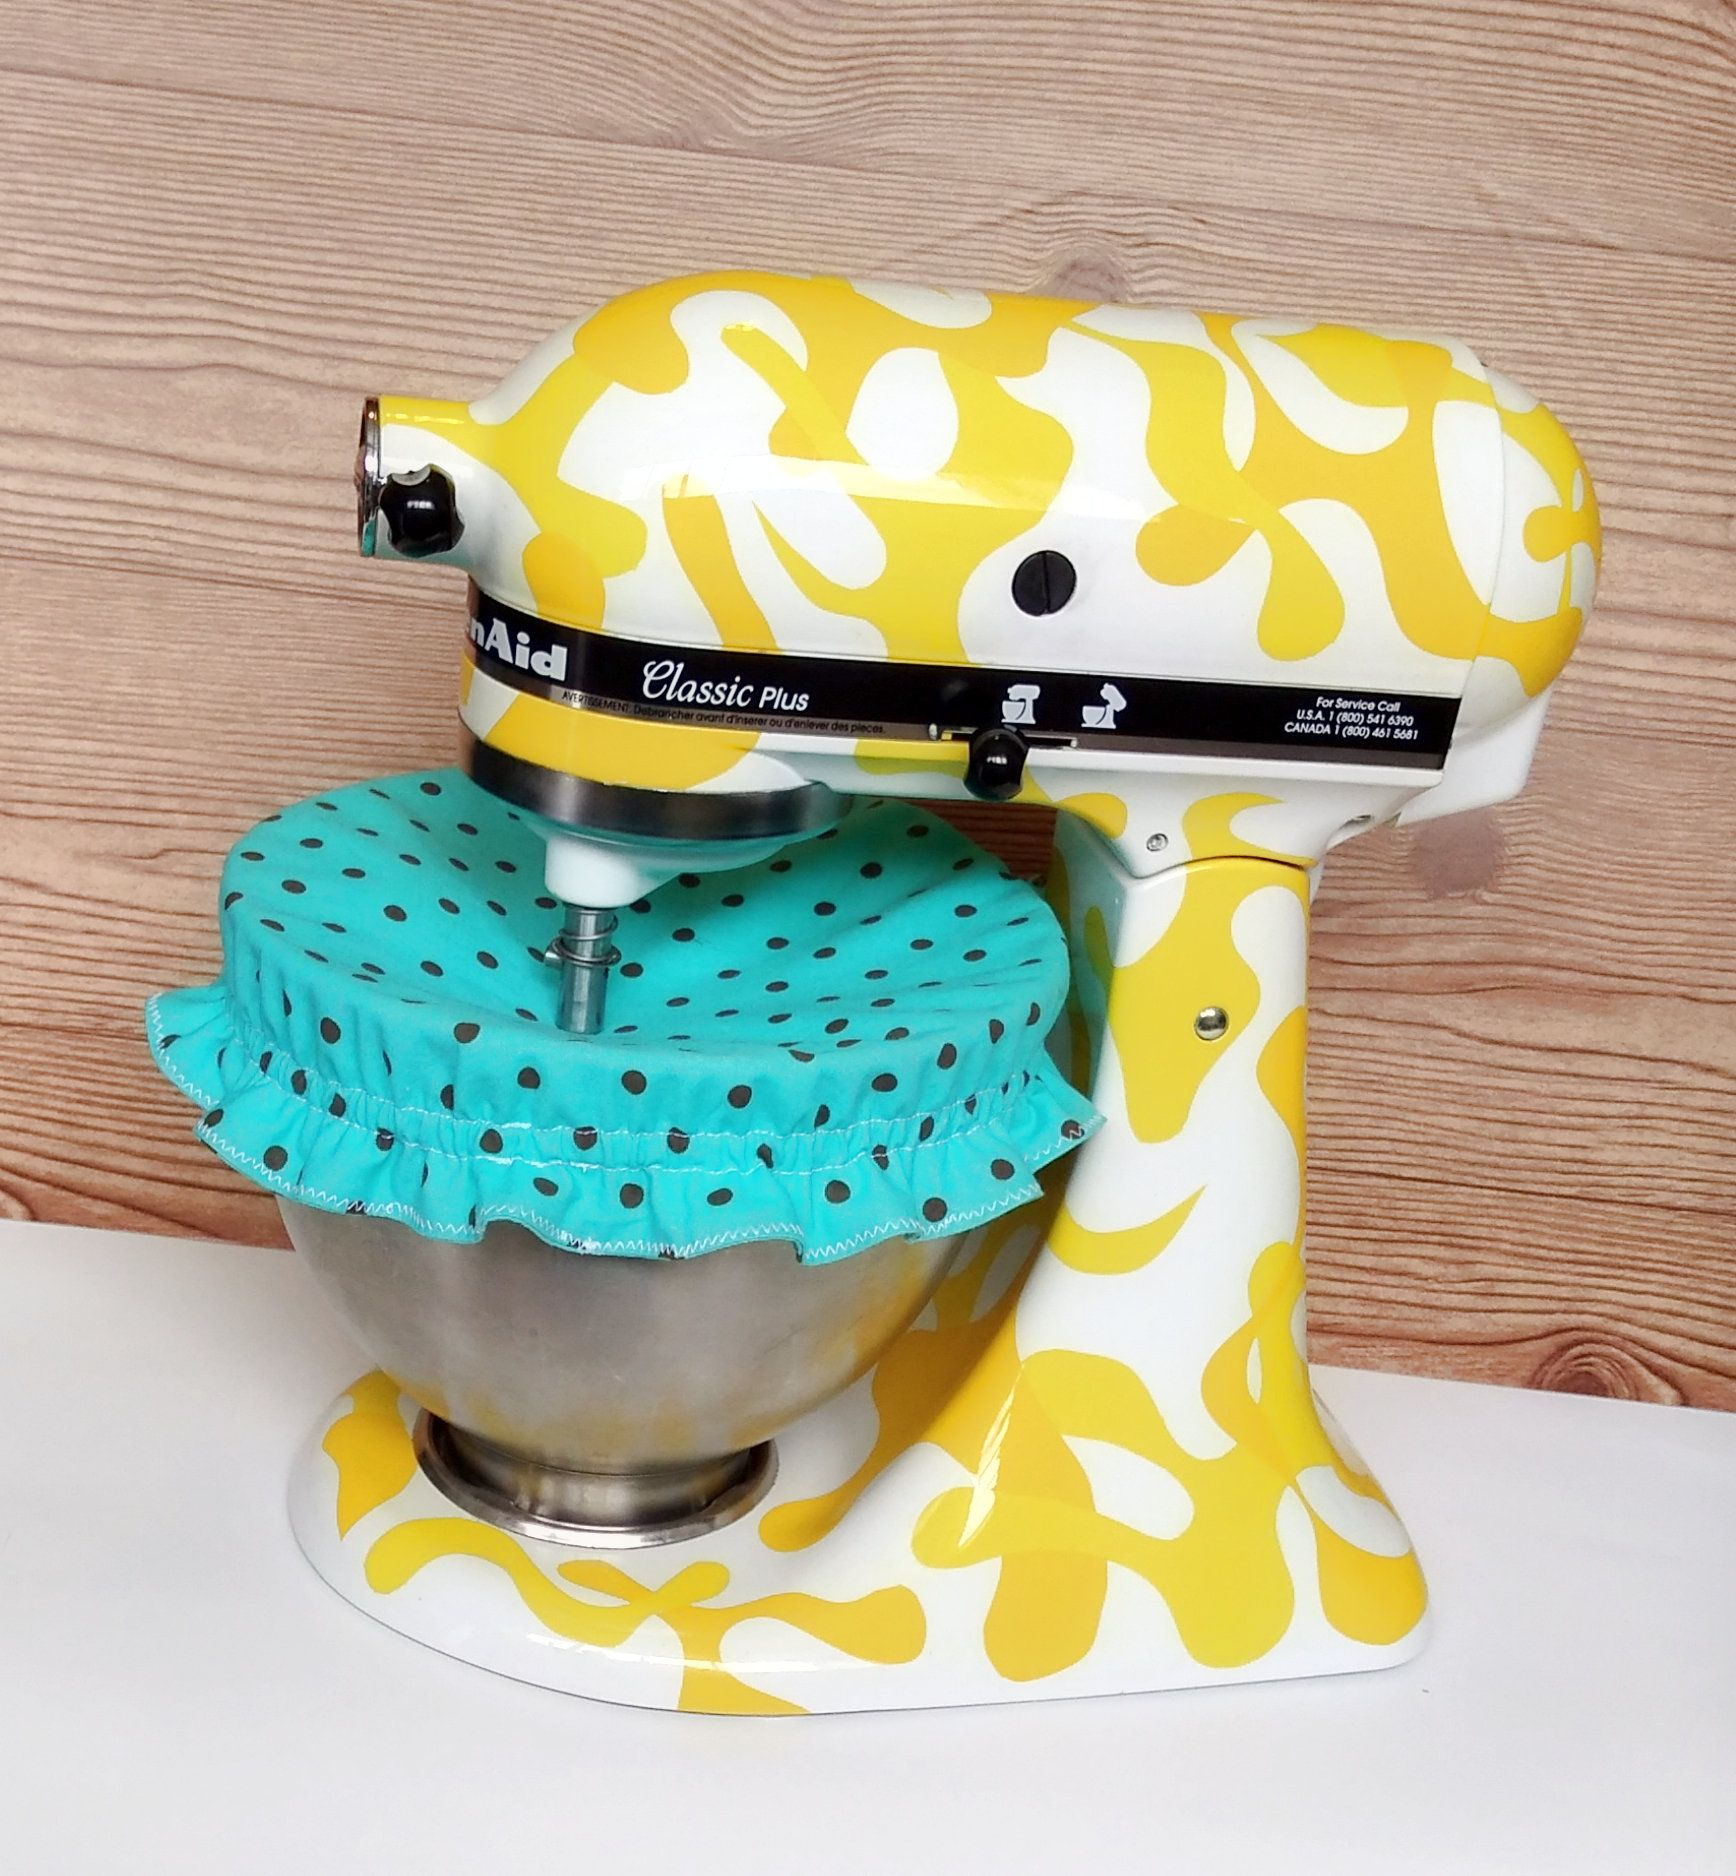 How do you guys like this teal kitchenaid mixer bowl cover